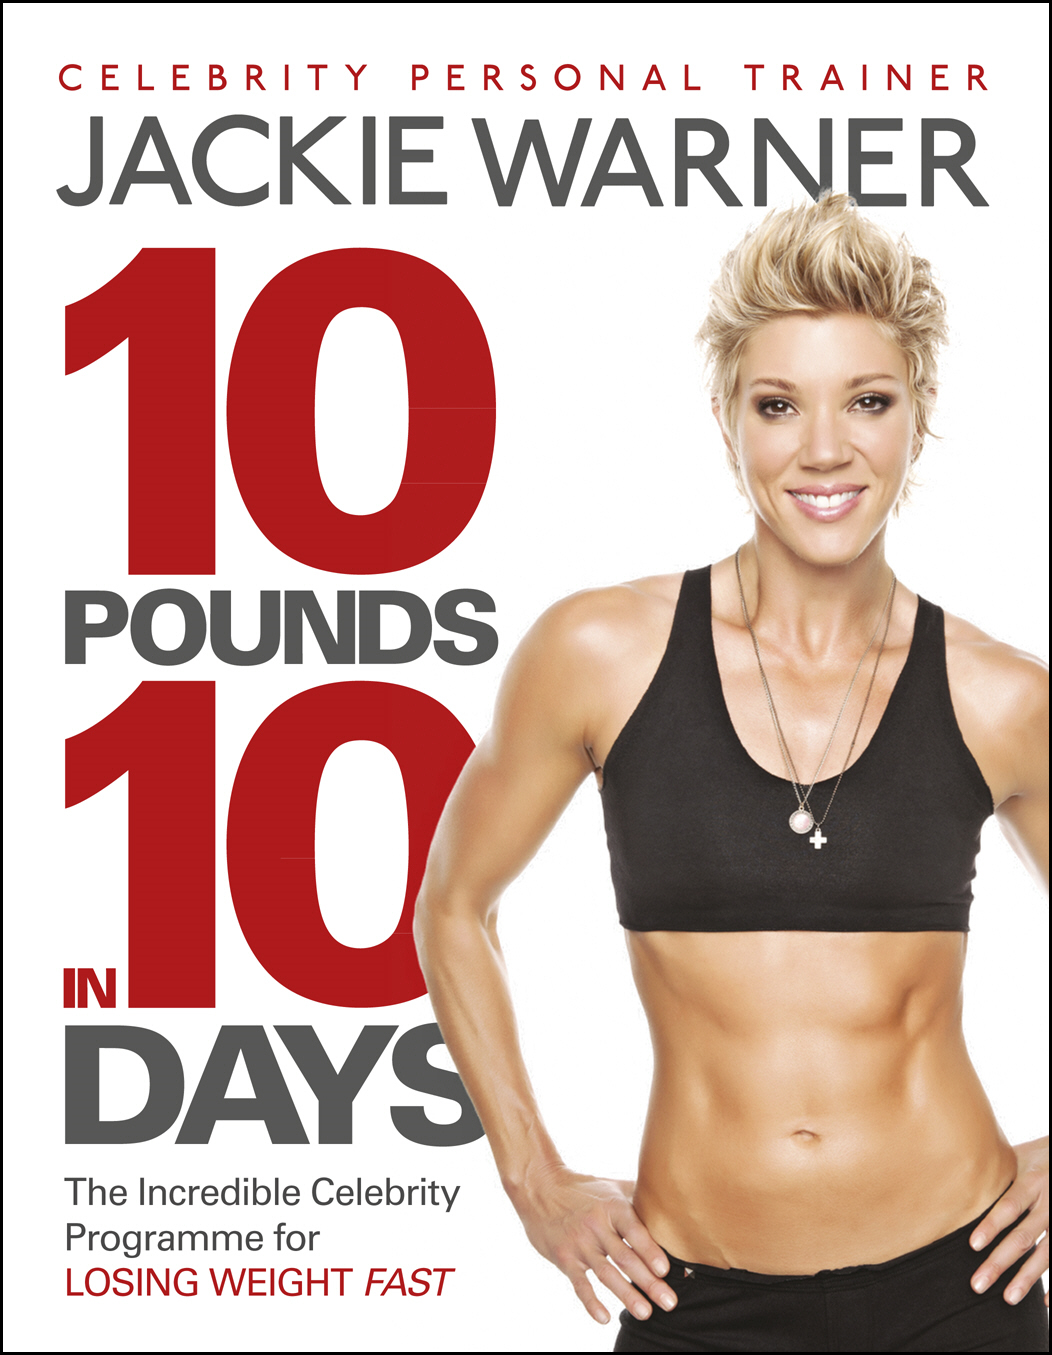 10 pounds in 10 days The incredible celebrity programme for losing weight fast